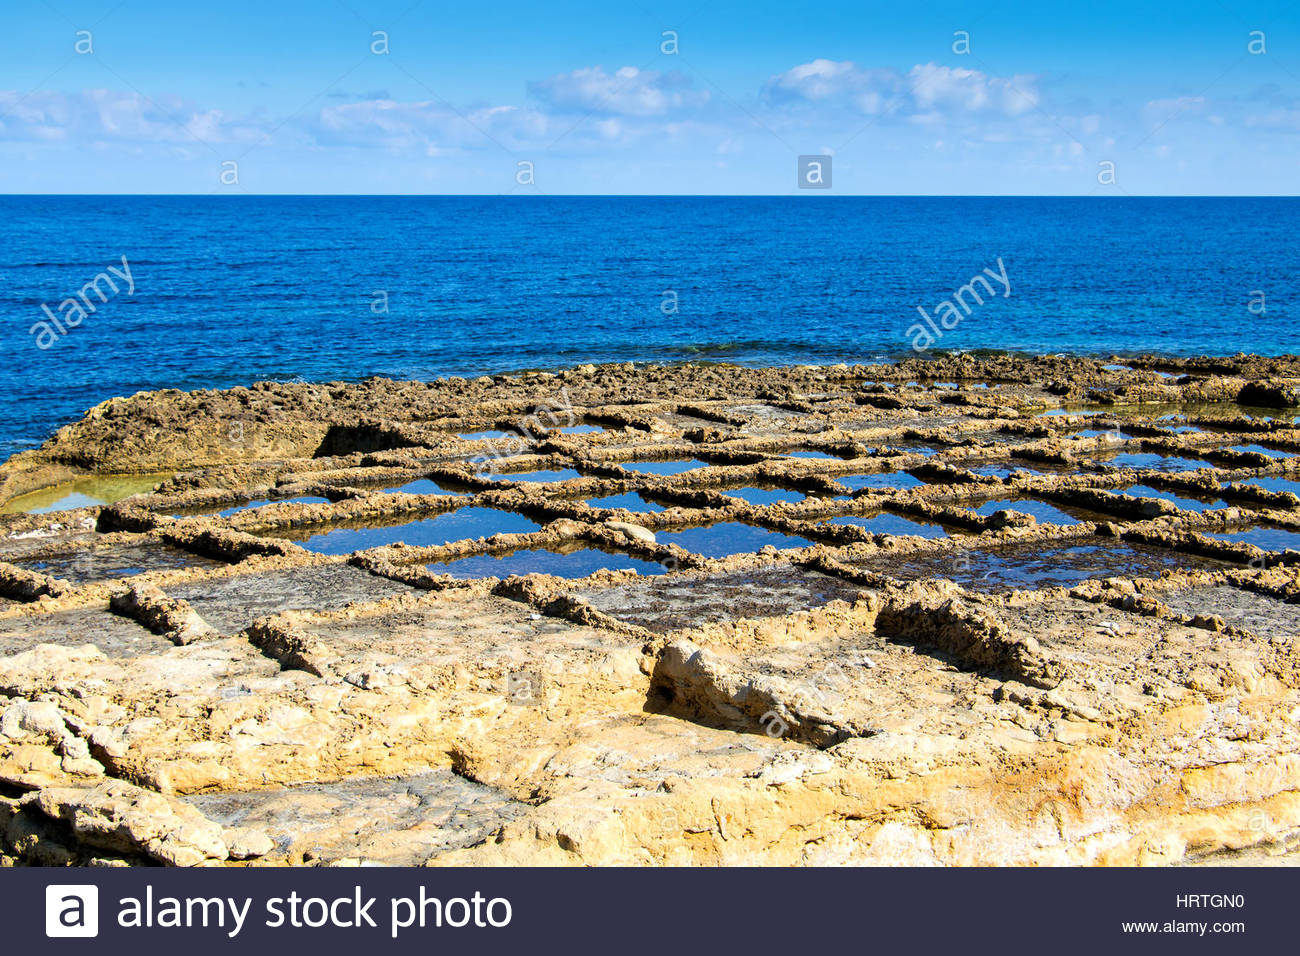 Abandoned historical Salina salt pans, salines, build into the rocky cliffs of the mediterranean sea coast of Gozo - Stock Image